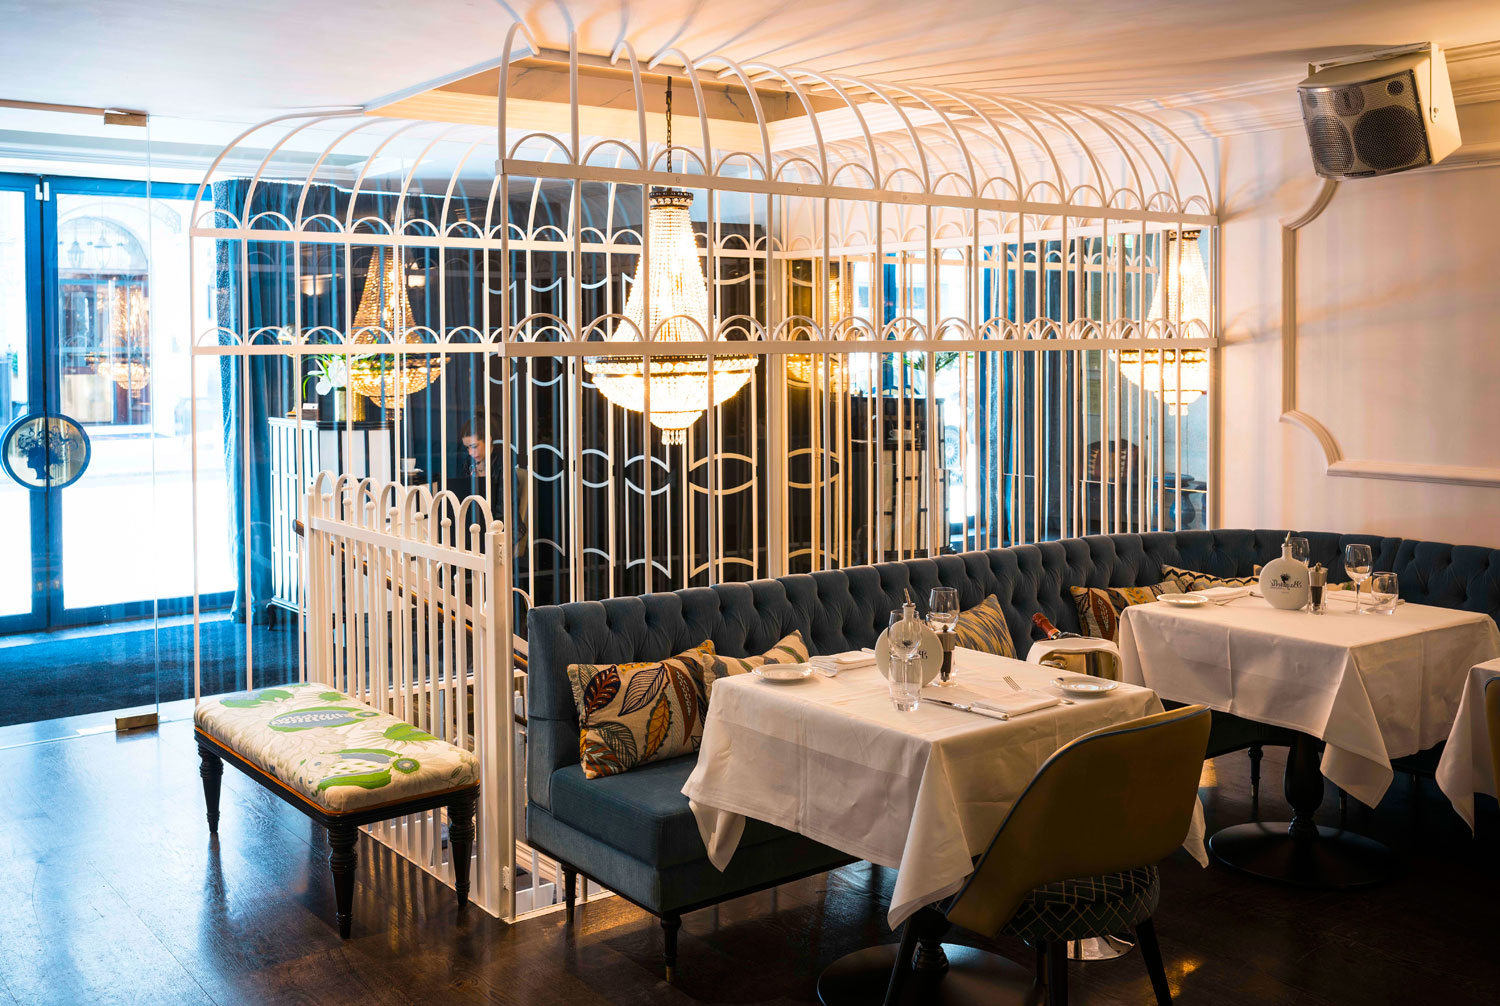 French Cuisine With Mayfair Flair For Brunch At Bagatelle 13